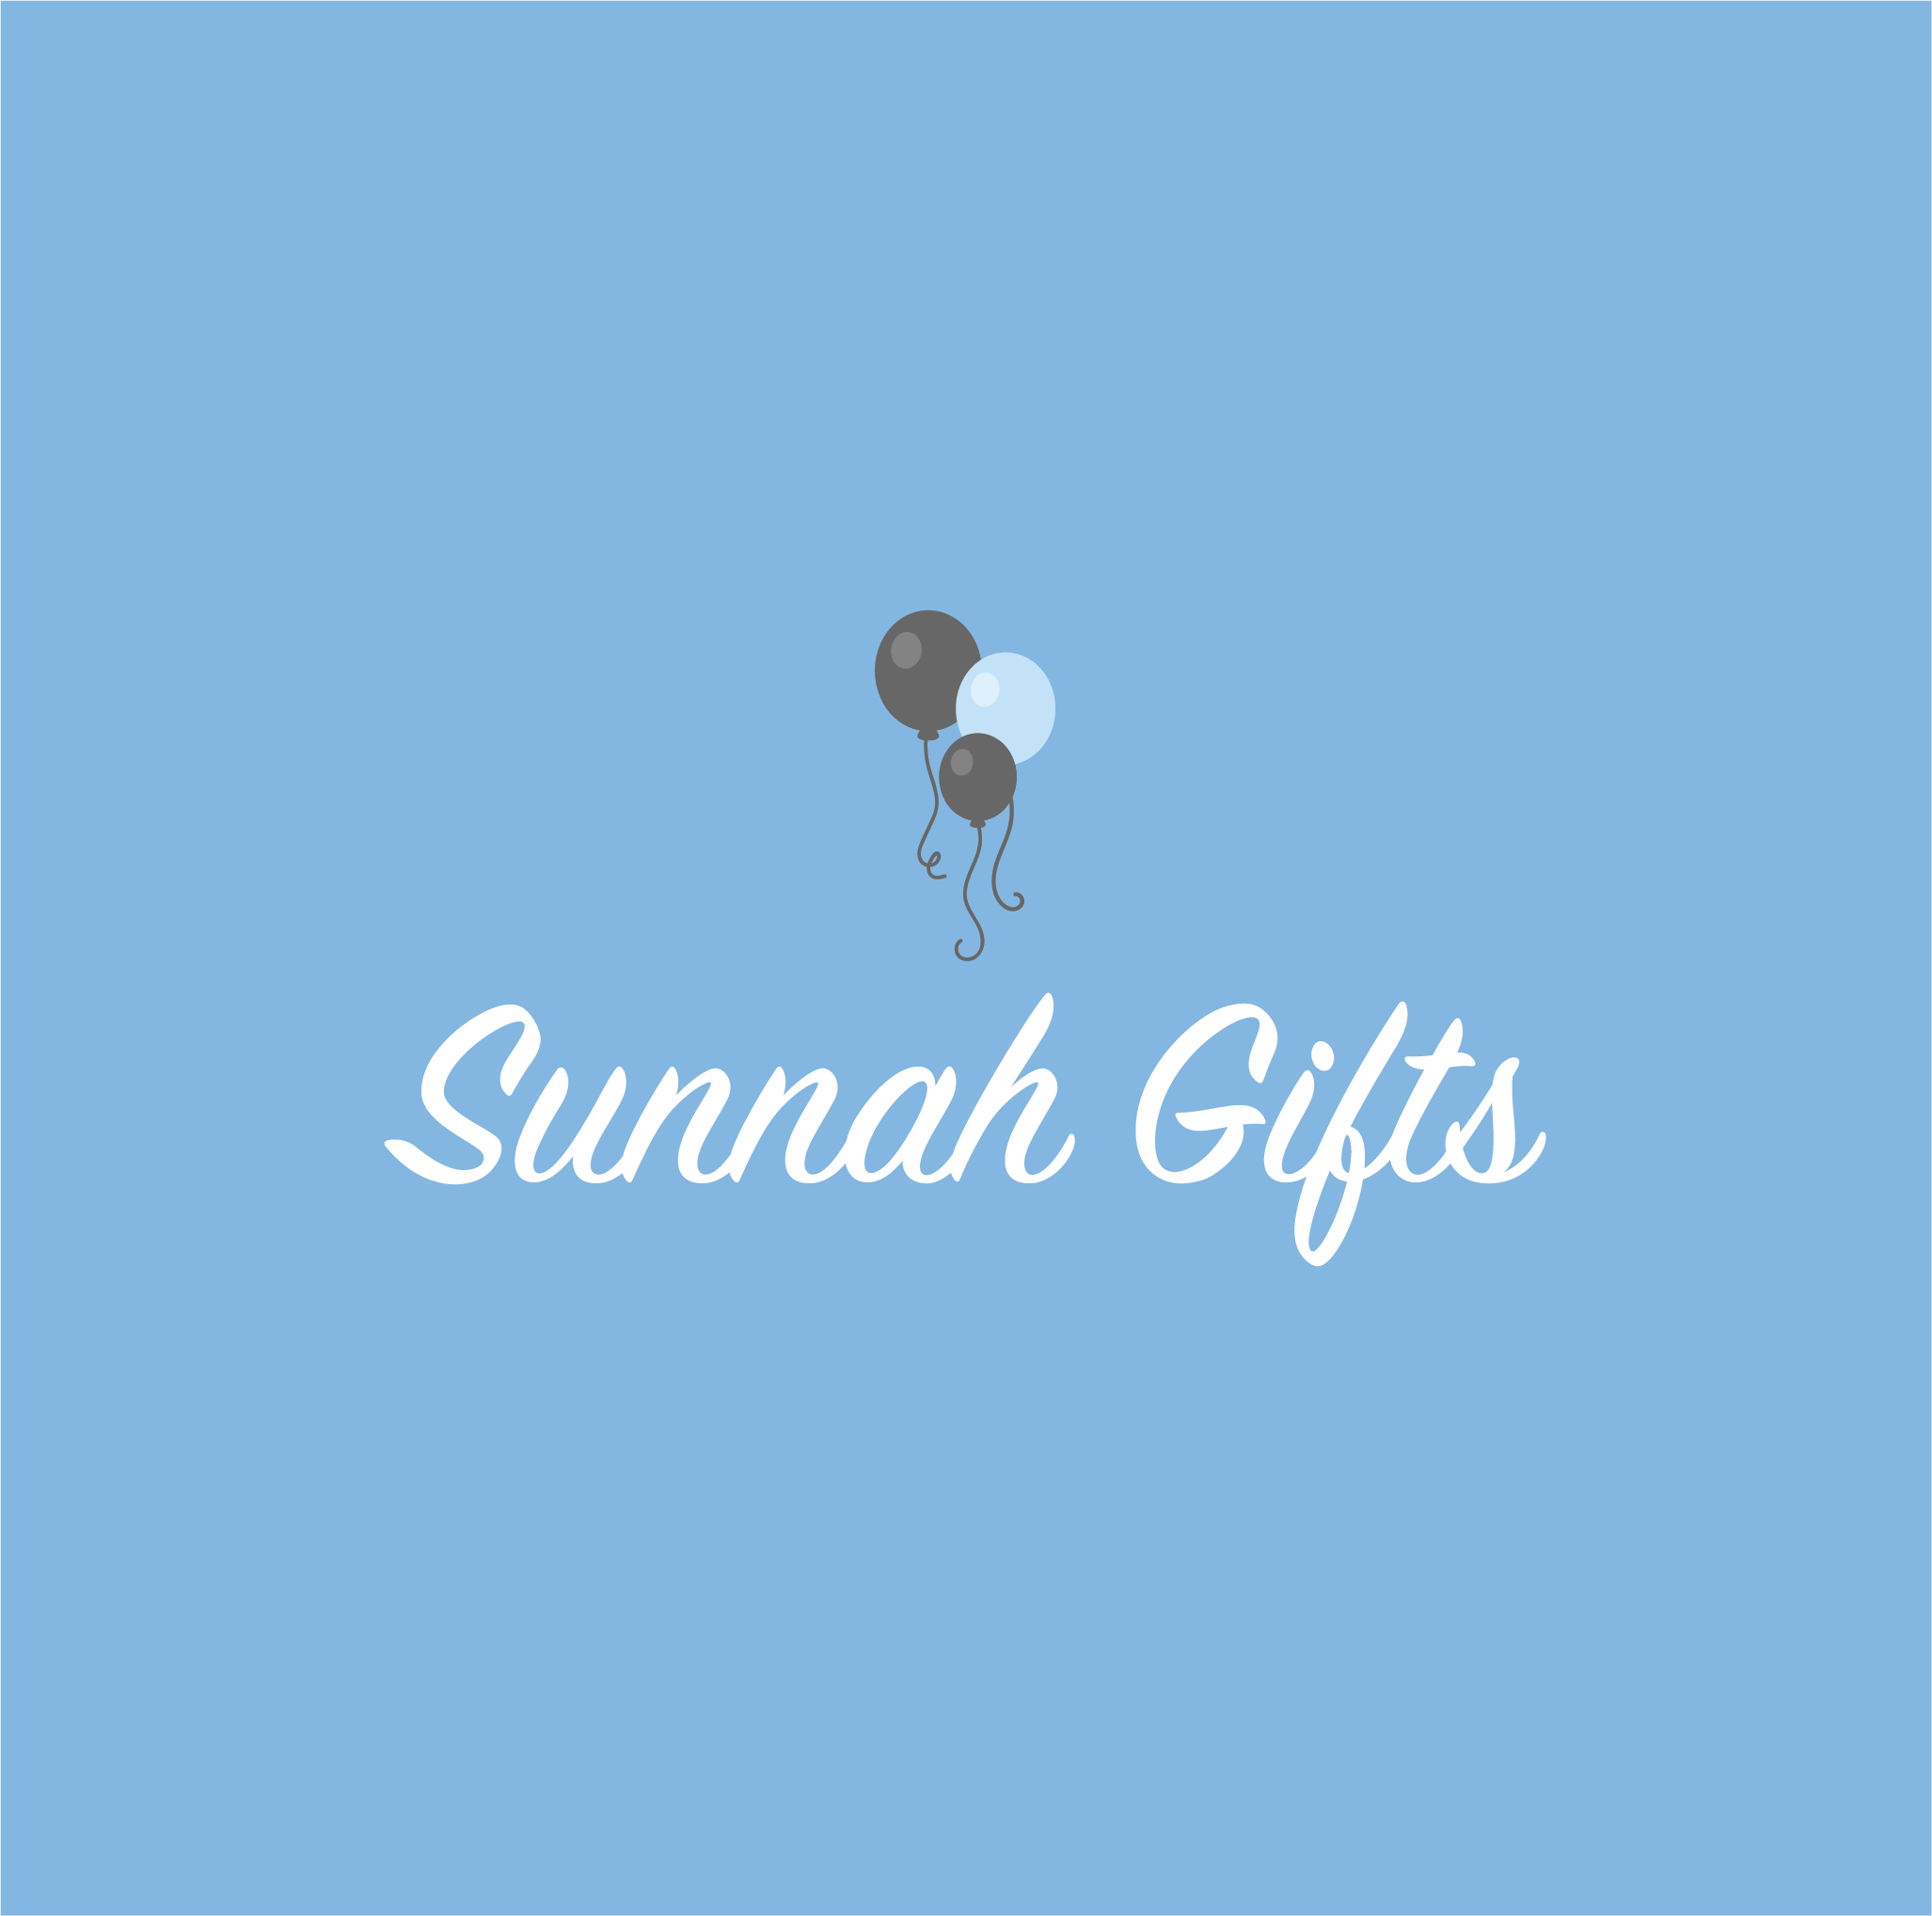 Instagram Story Cover - Sunnah Gifts Image